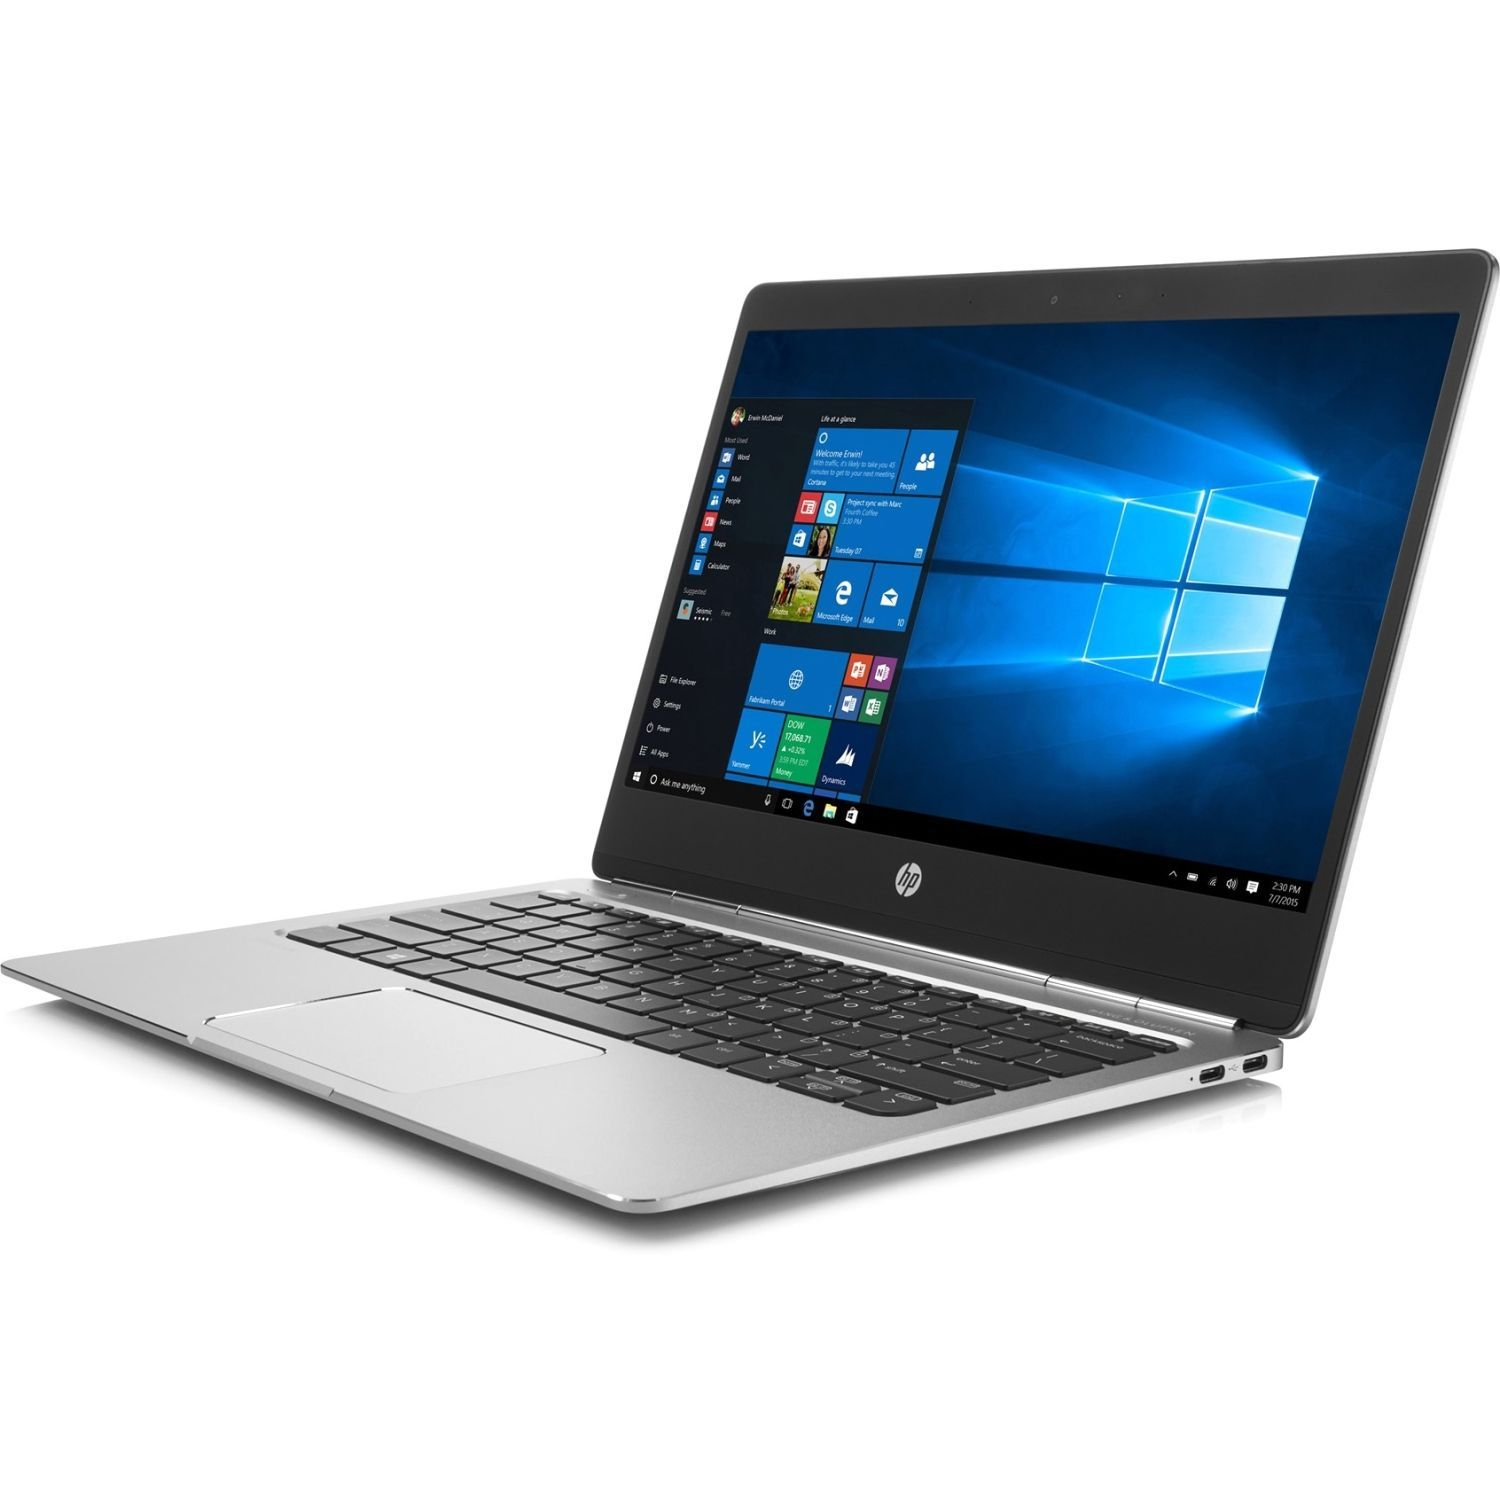 hp showroom in chennai hp store hp dealers hp laptops chennai dealers pricelist hyderbad IT Consumer Goods Dealers in Chennai Pinterest